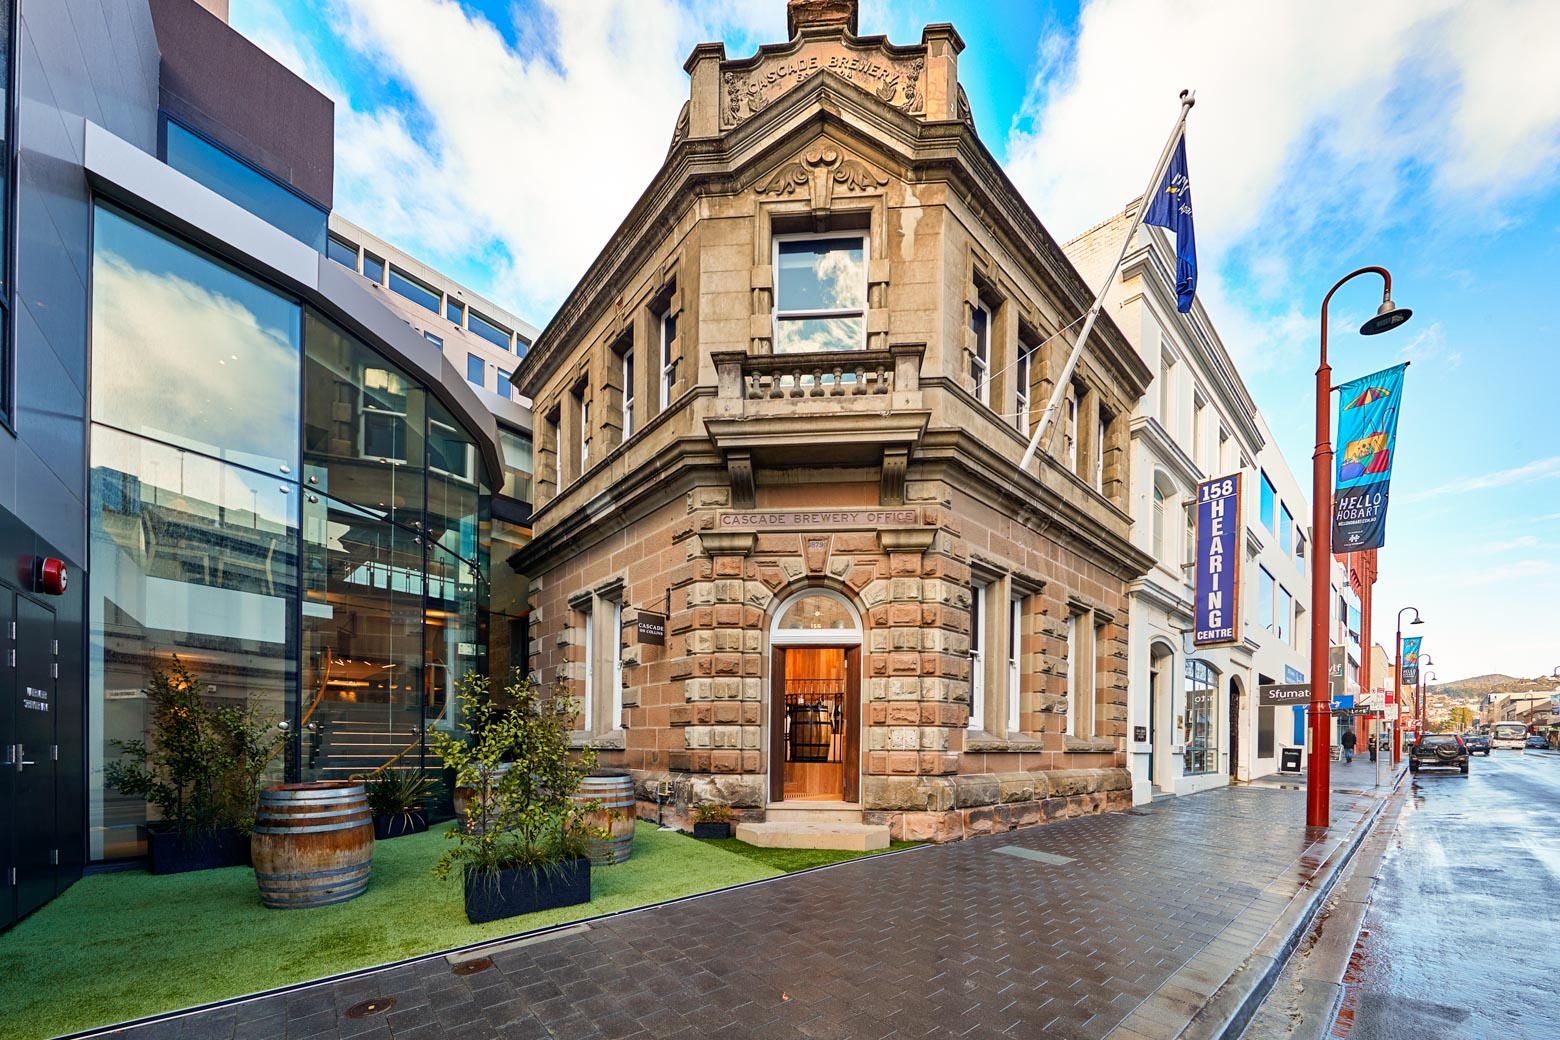 Stay at the RACV/RACT Hobart Apartment Hotel on your Lap of Tasmania road trip